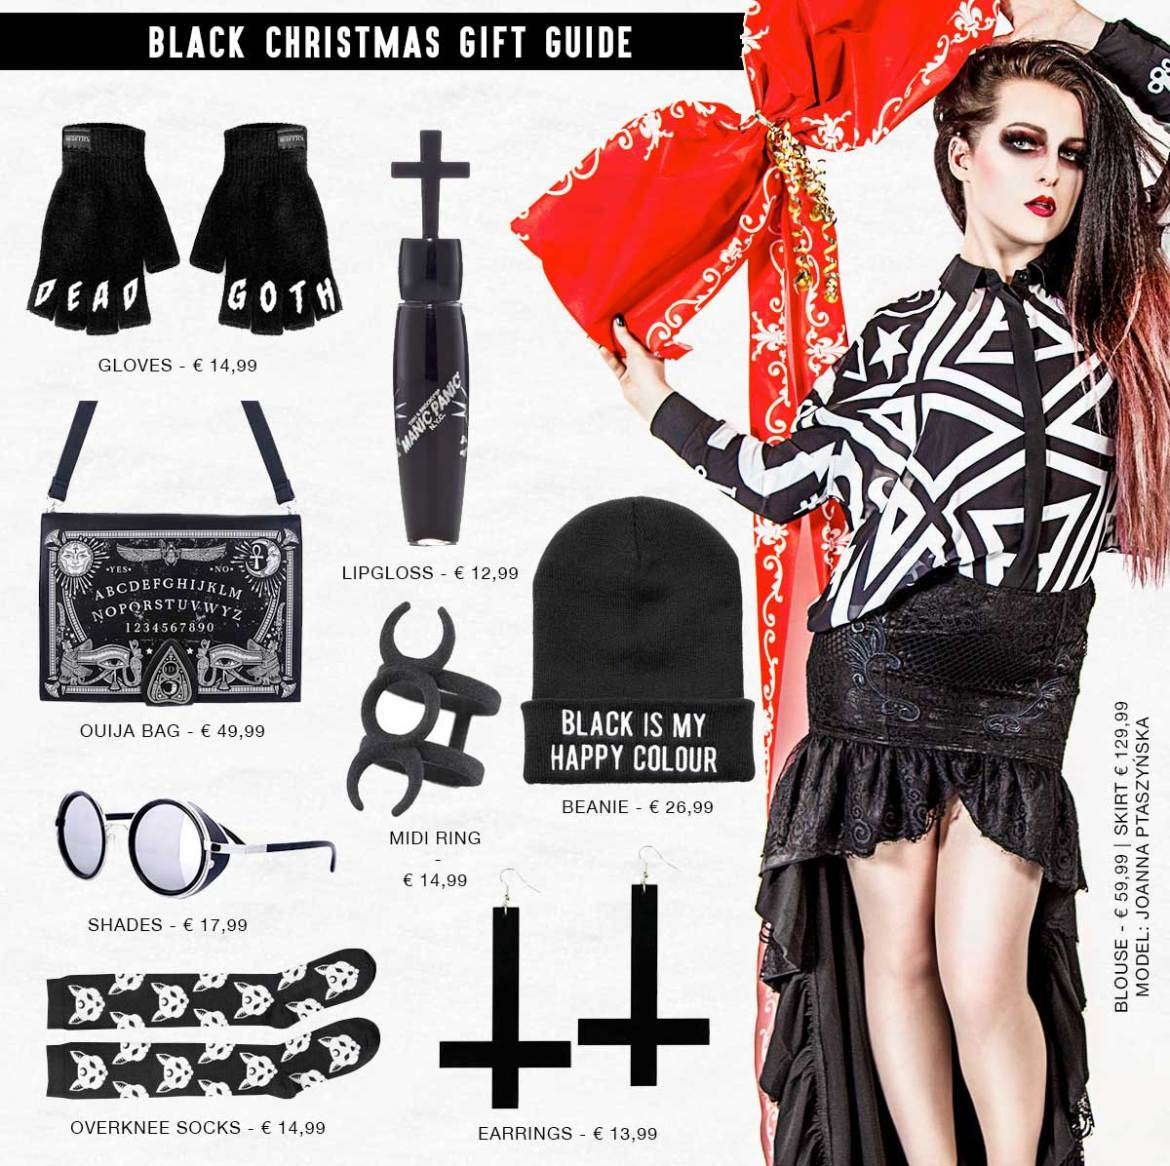 blackchristmas gift guide